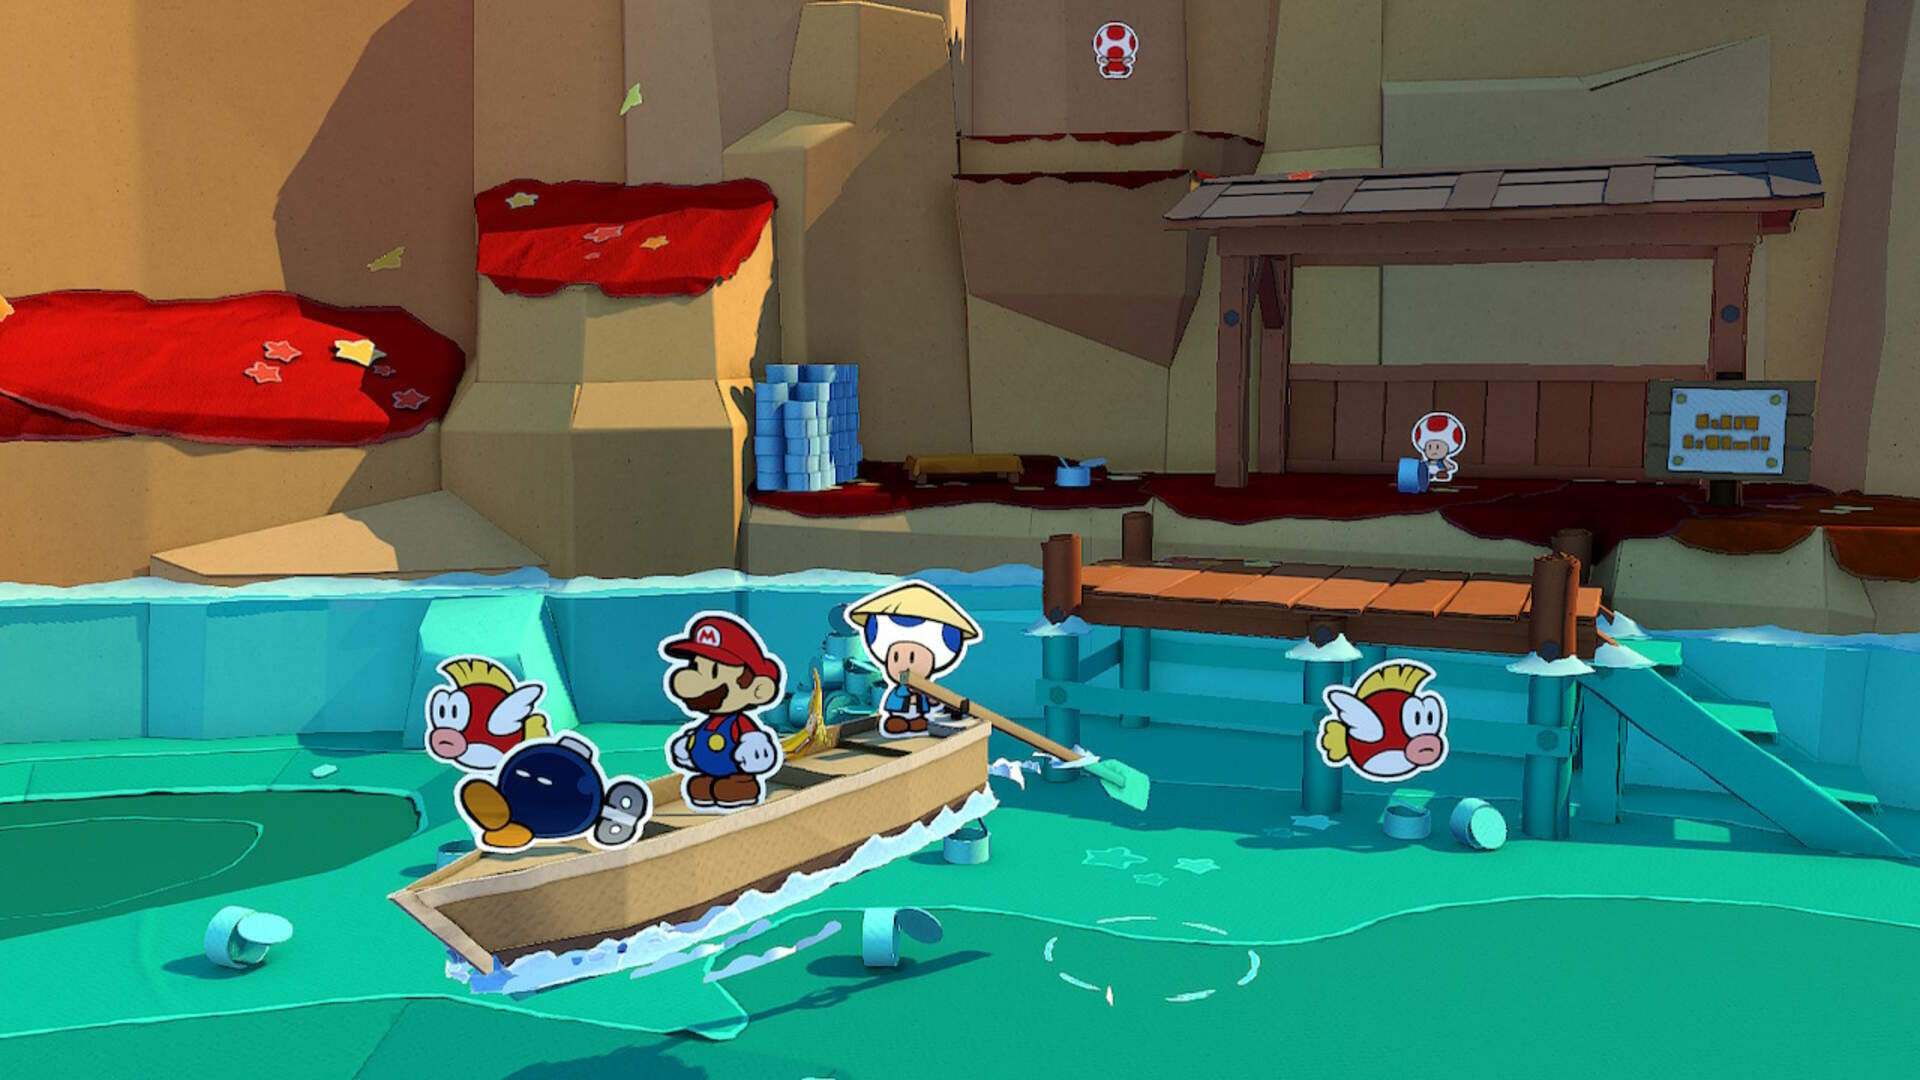 Paper Mario The Origami King: What Is the Reward For Completing the Eddy River Rapids?